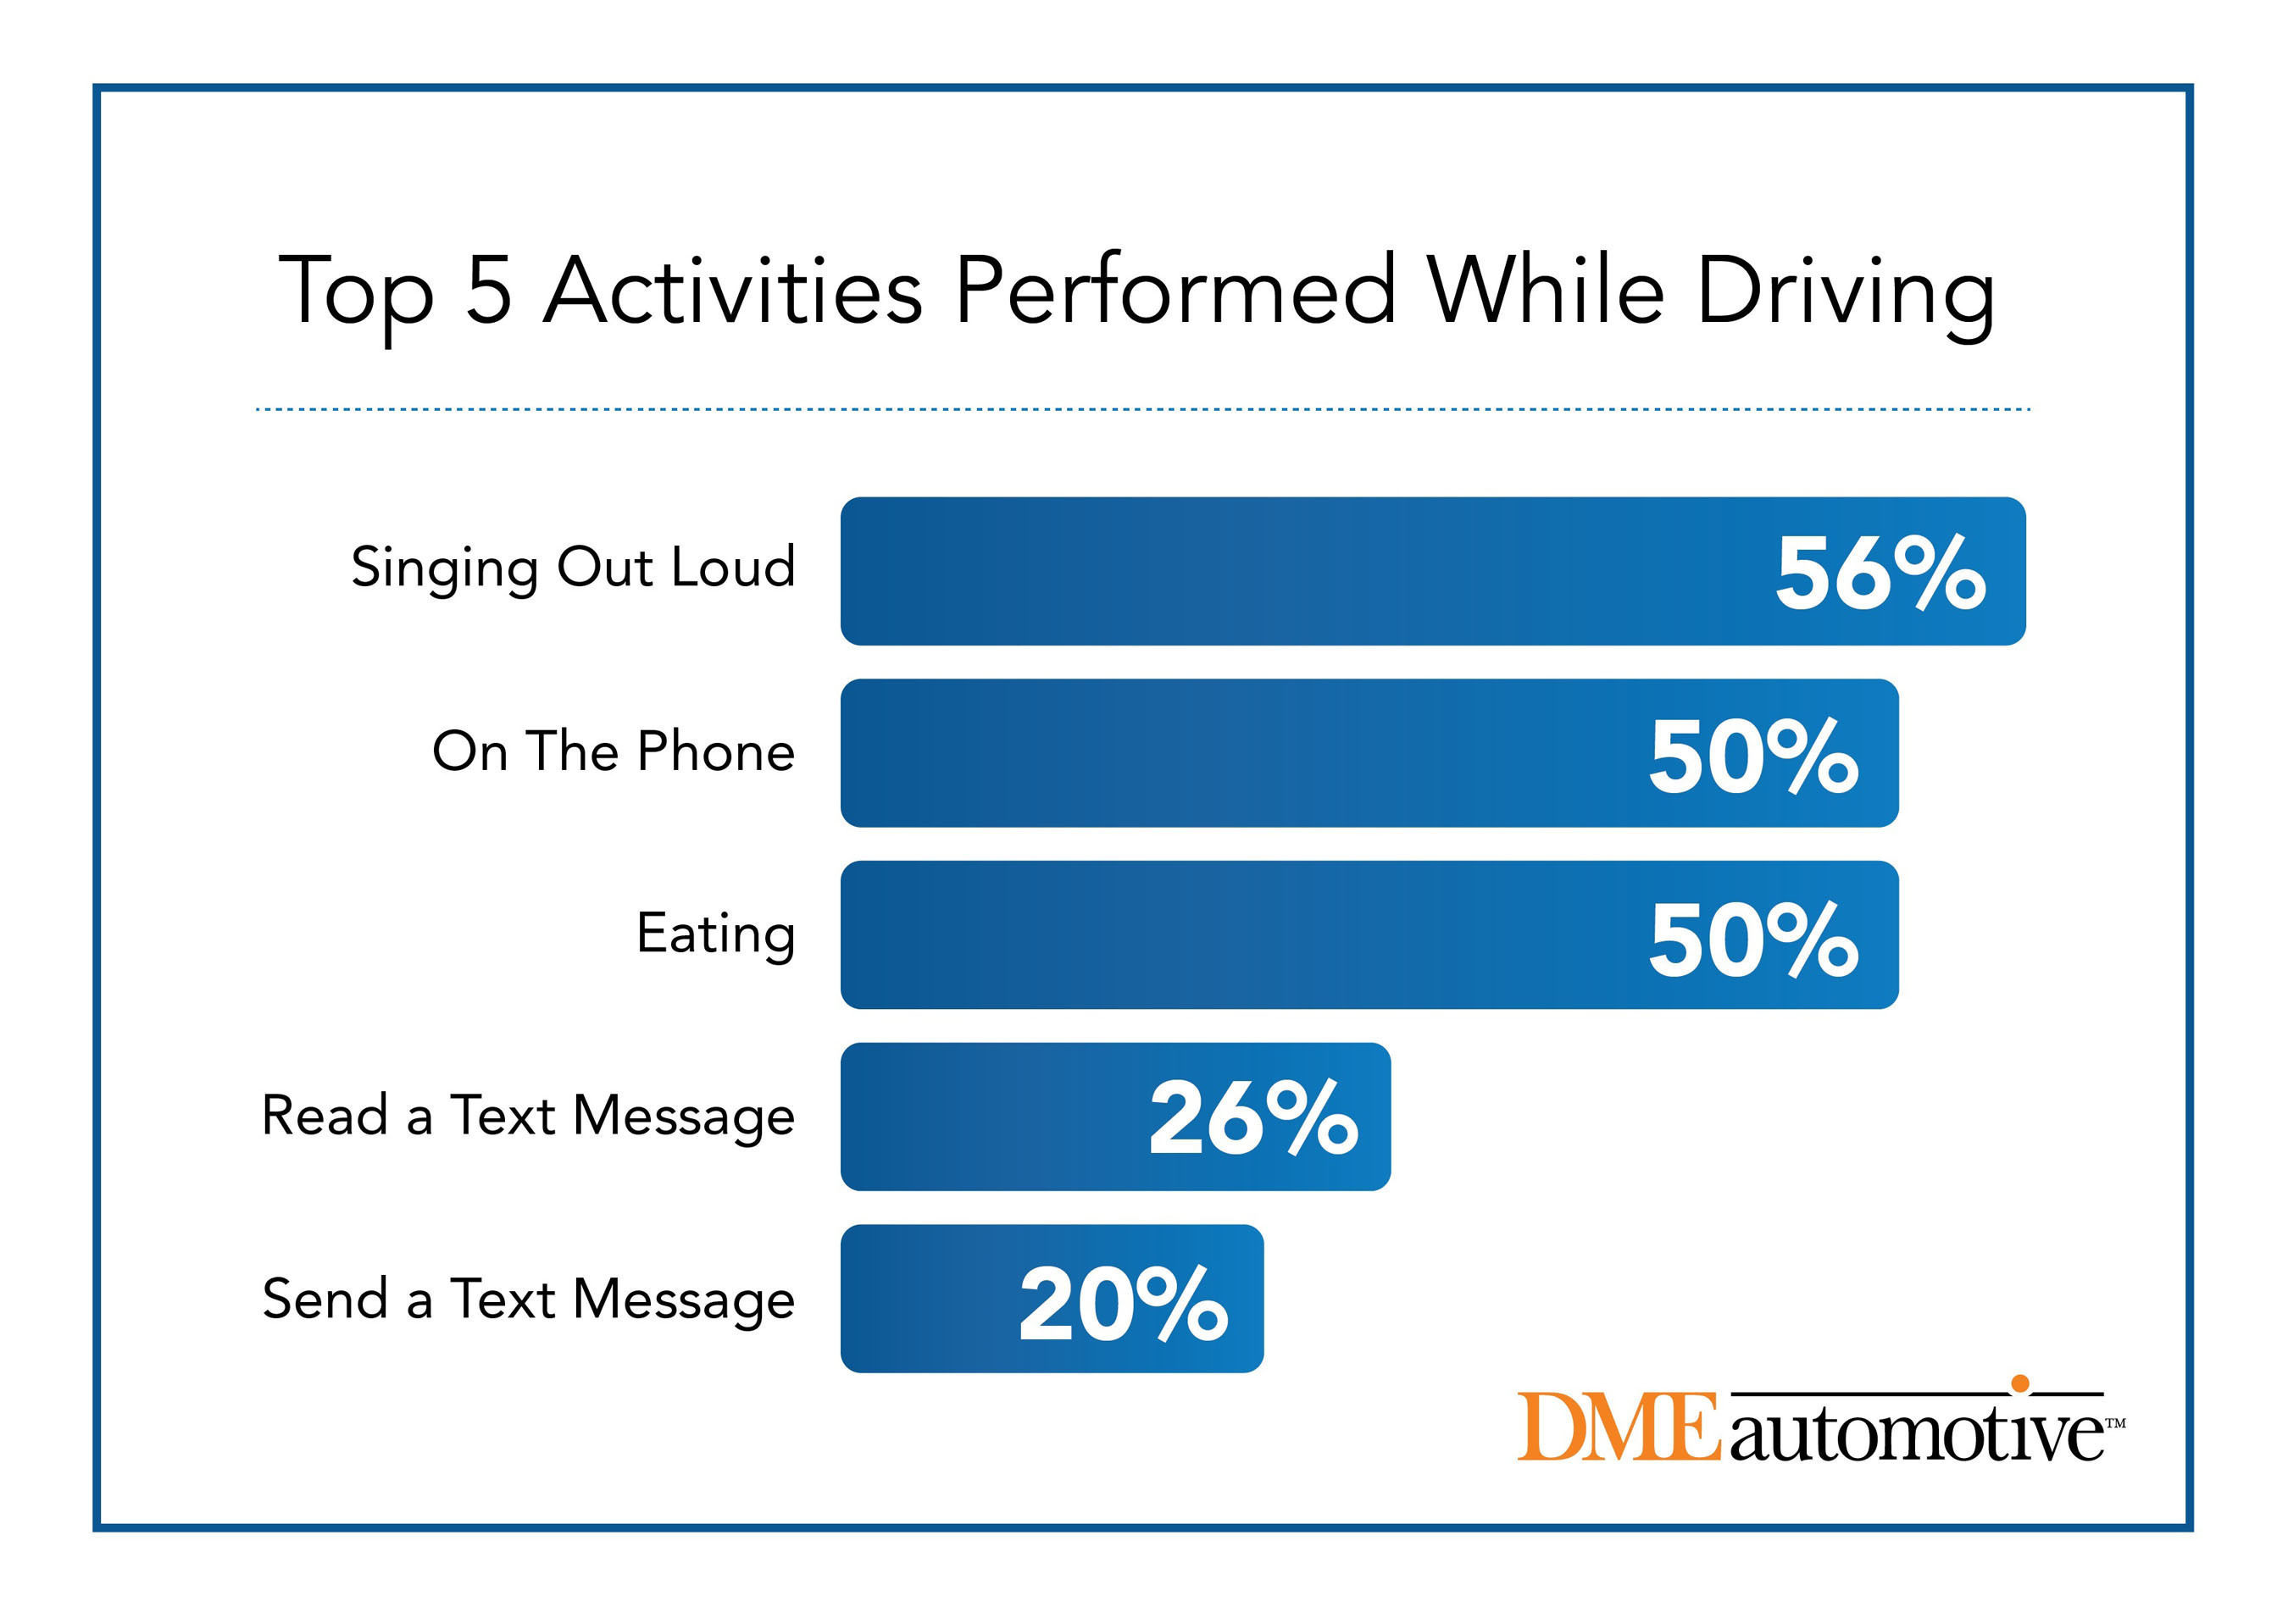 Car-aoke Anyone? New Study from DMEautomotive Reveals Singing Out Loud is Top Activity While Driving. ...